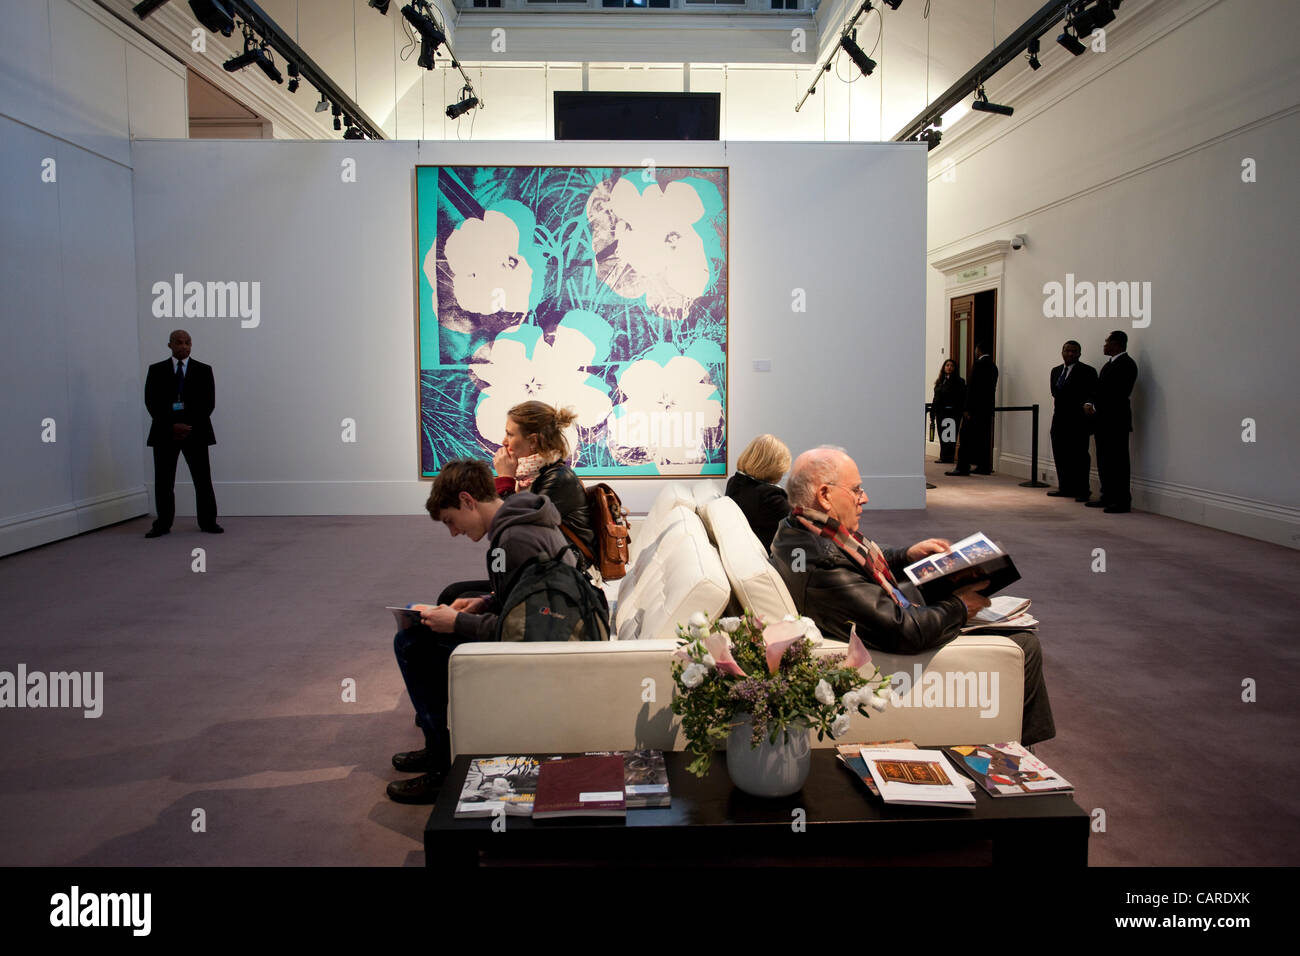 New york usa 11th nov 2015 telephone bidders stand in front of the - 13 04 2012 Picture Shows Andy Warhol S Ten Foot Flowers On Public Display At Sotheby S